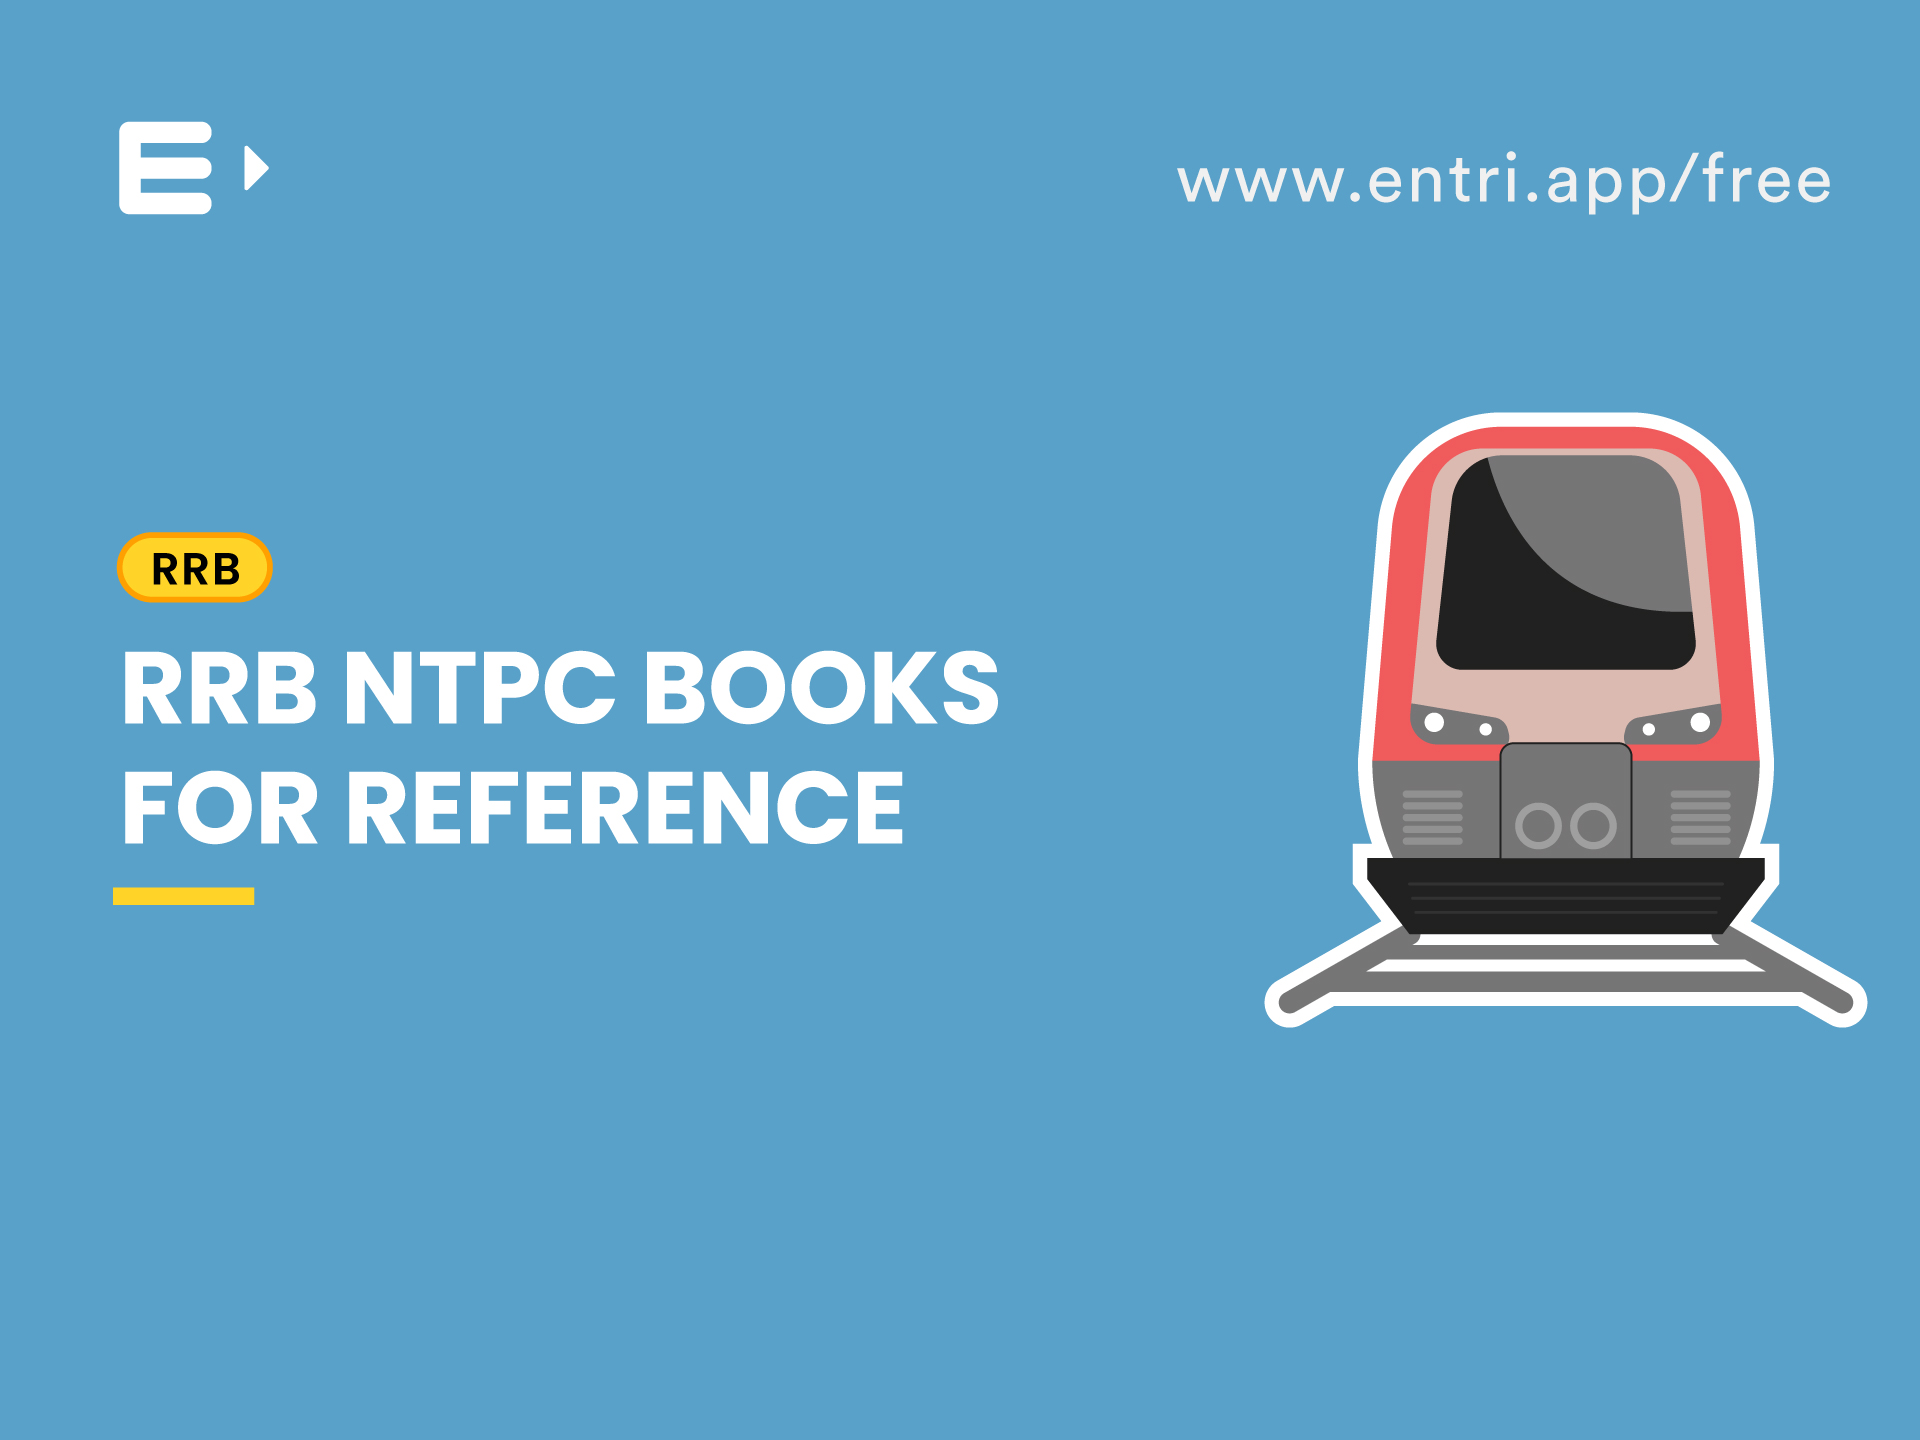 RRB NTPC Recruitment 2019 - Books for Reference